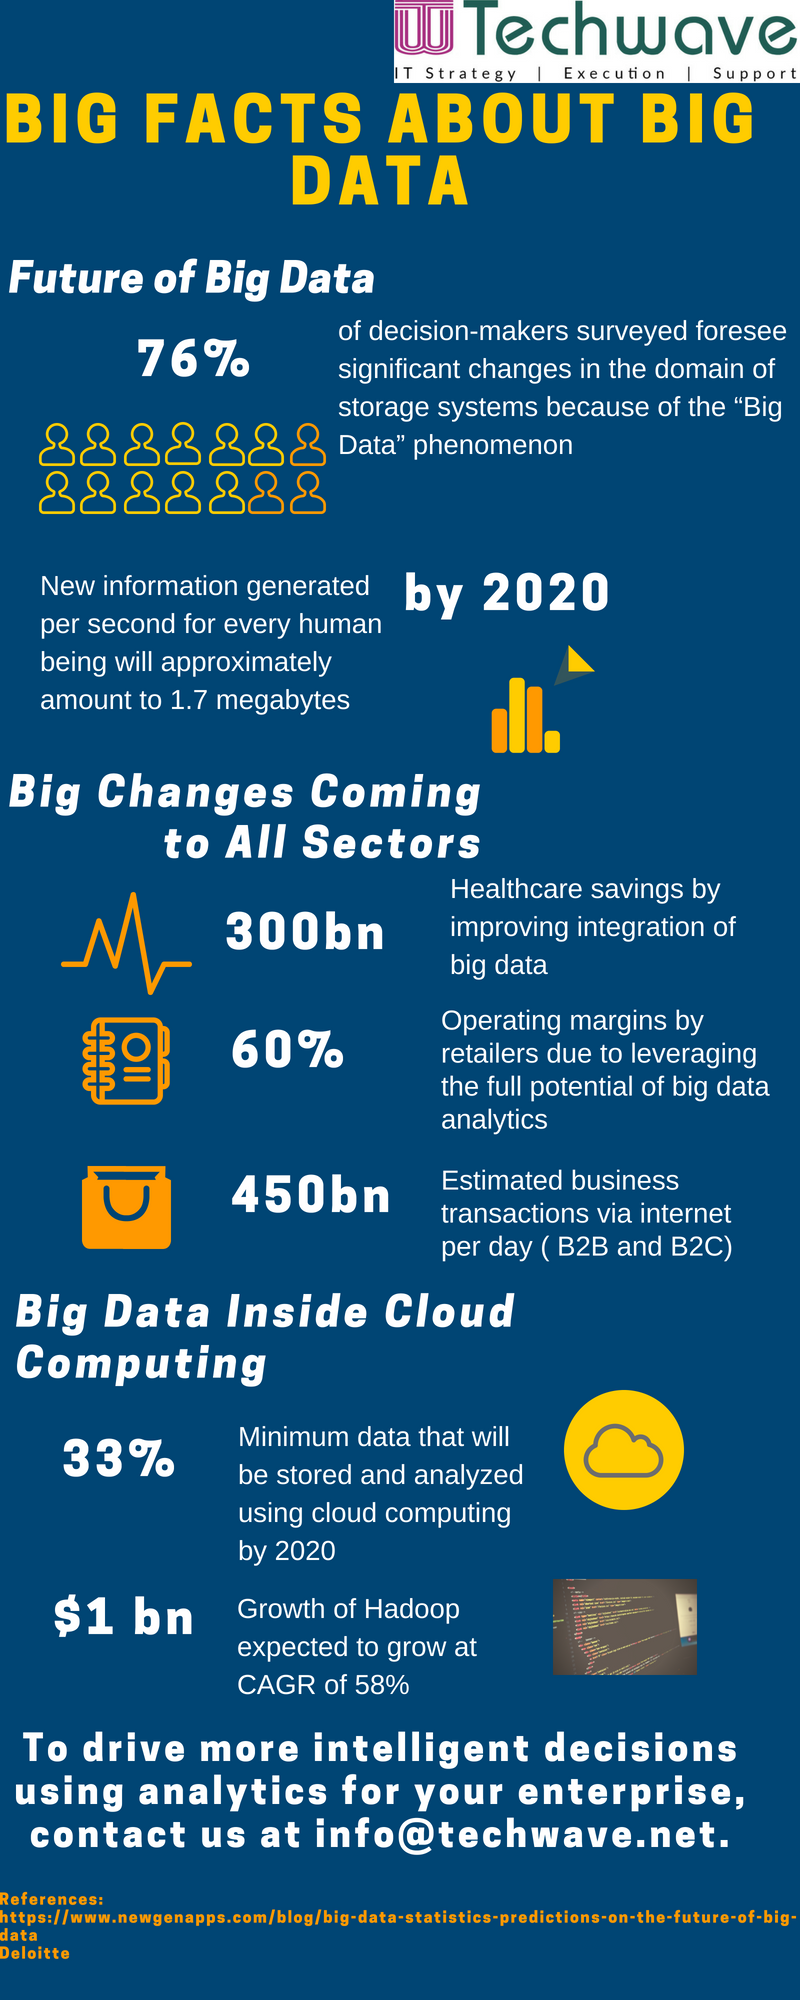 Big Facts about Big Data